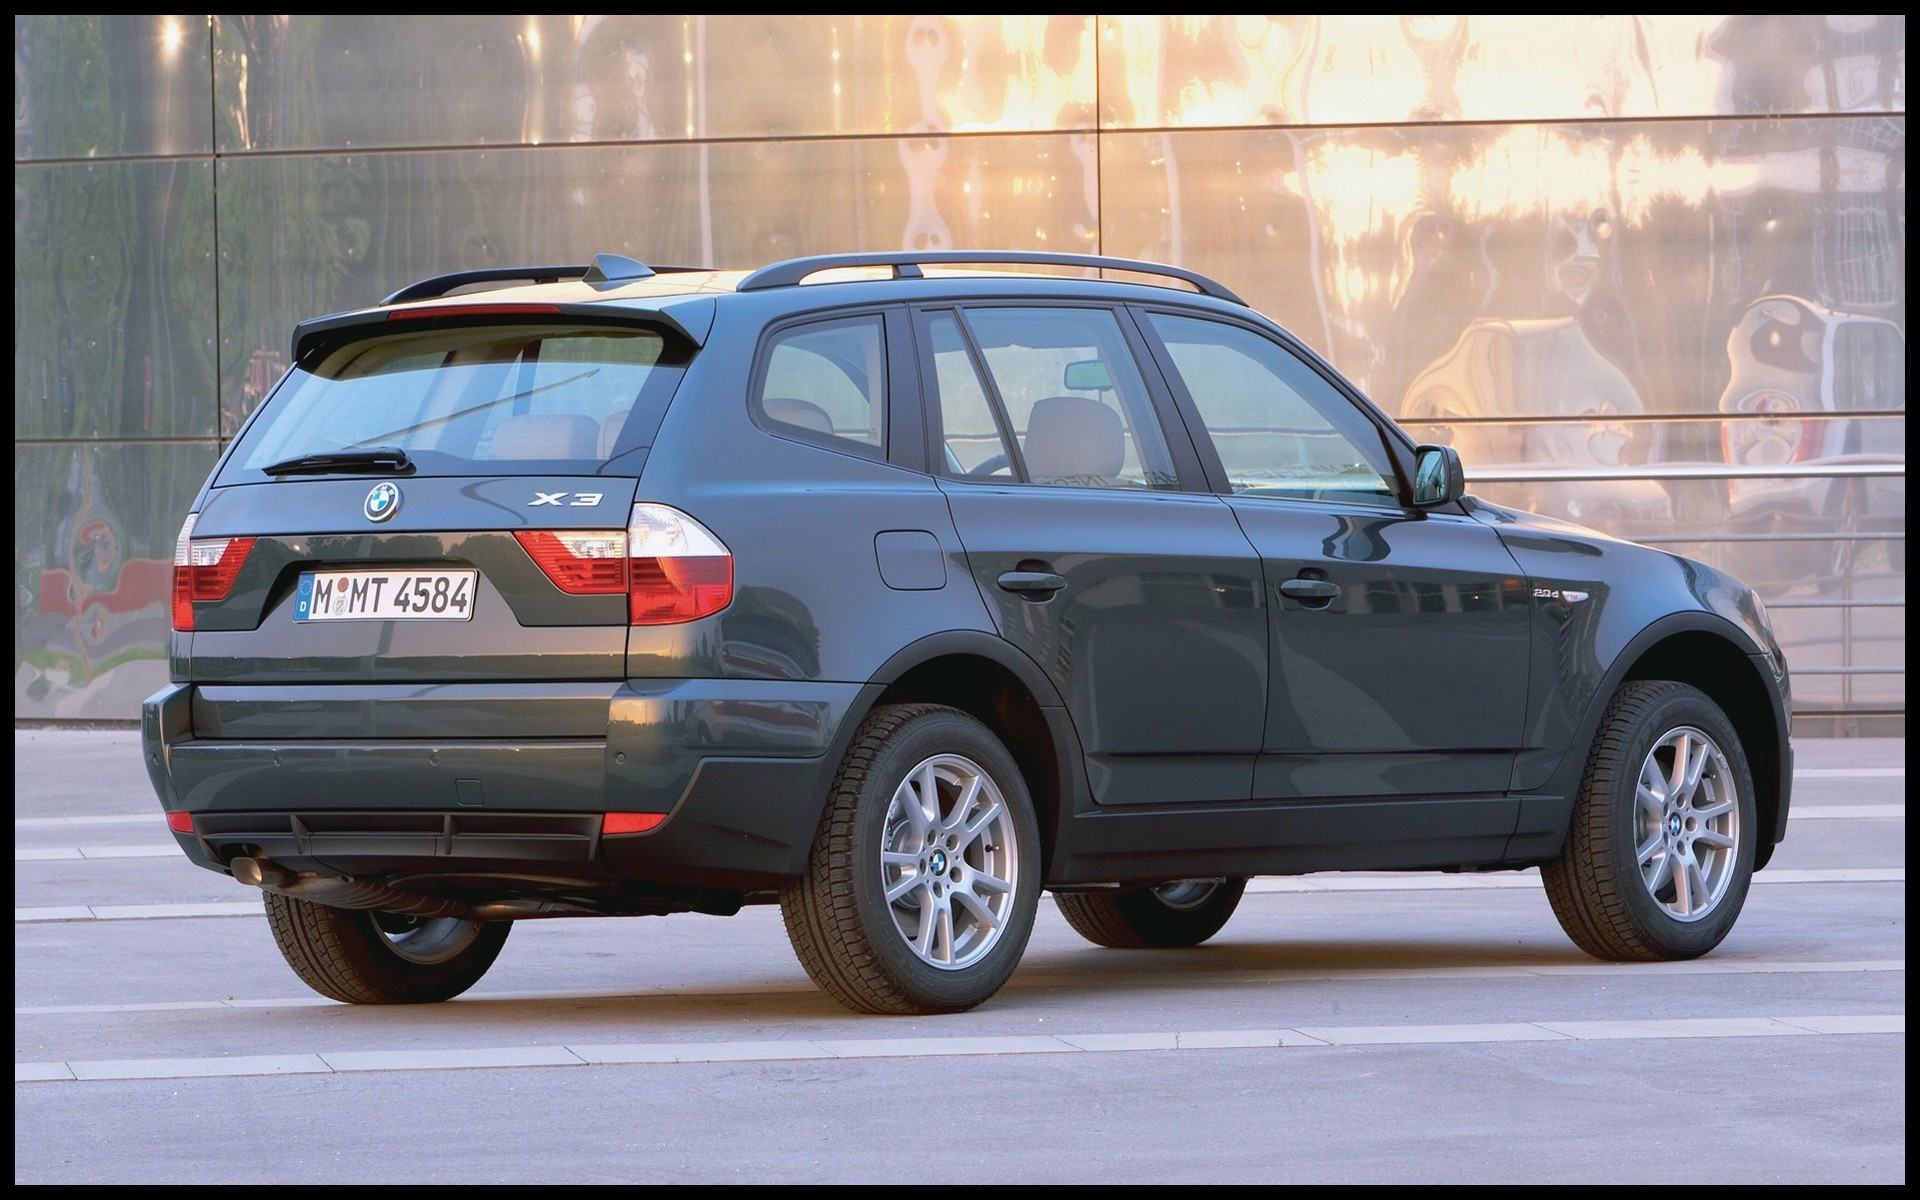 Bmw Car Hd Best Best Bmw X3 2 0d 2007 Wallpapers And Hd Best Wallpaper Bmw 735i